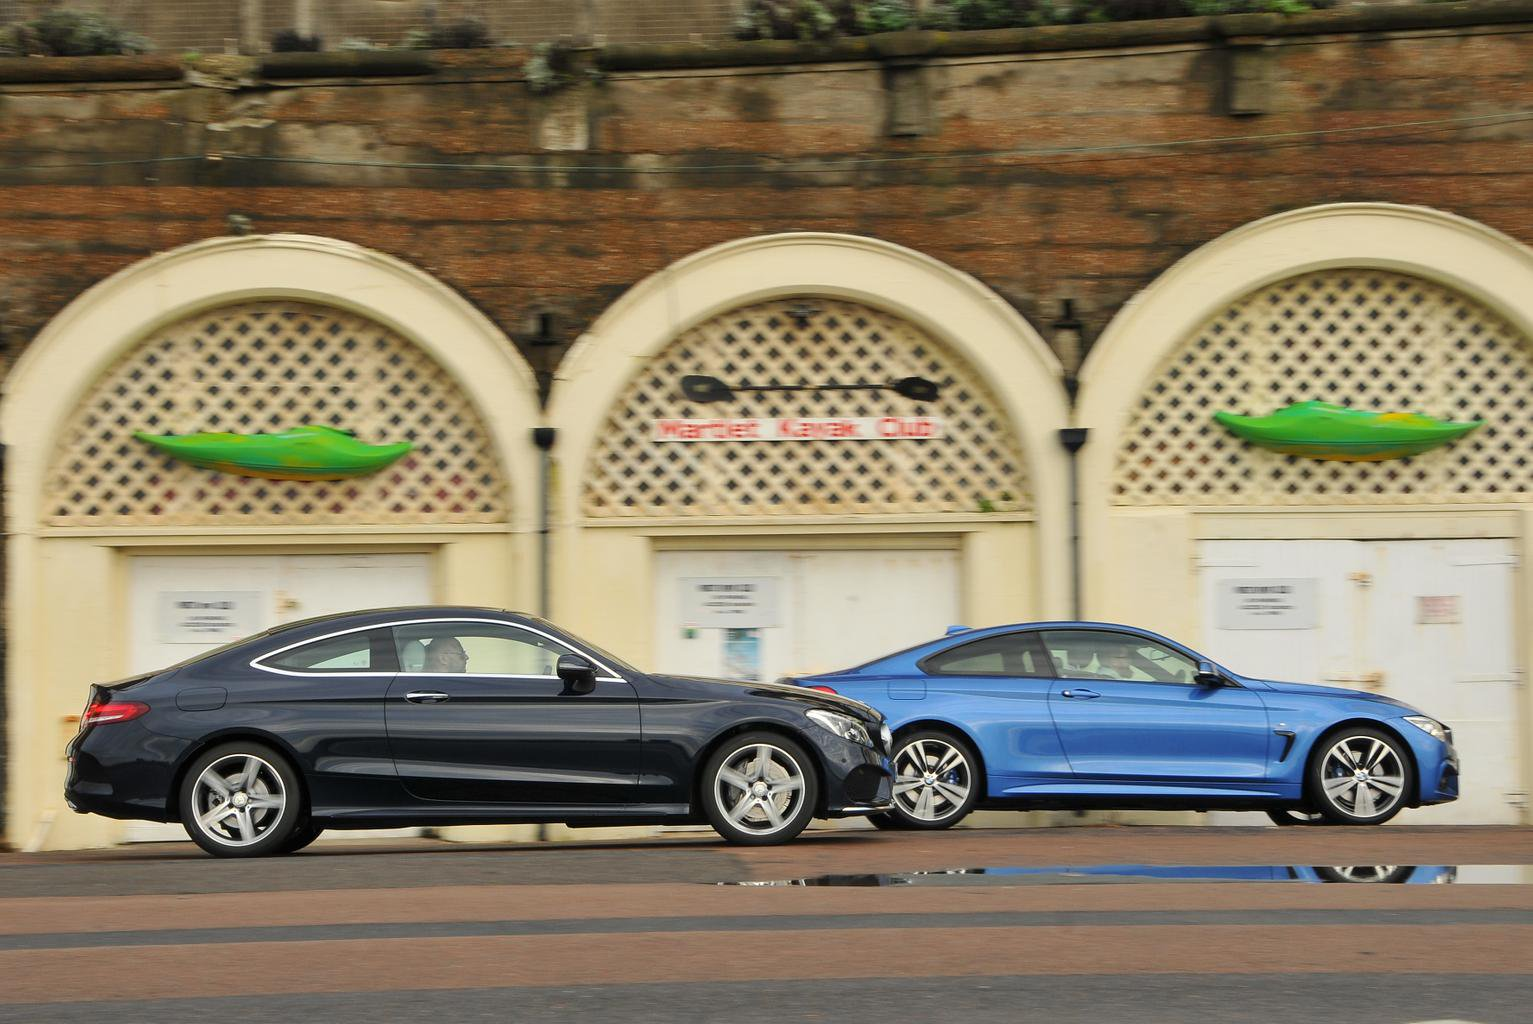 BMW 4 Series Coupe vs Mercedes C-Class Coupe